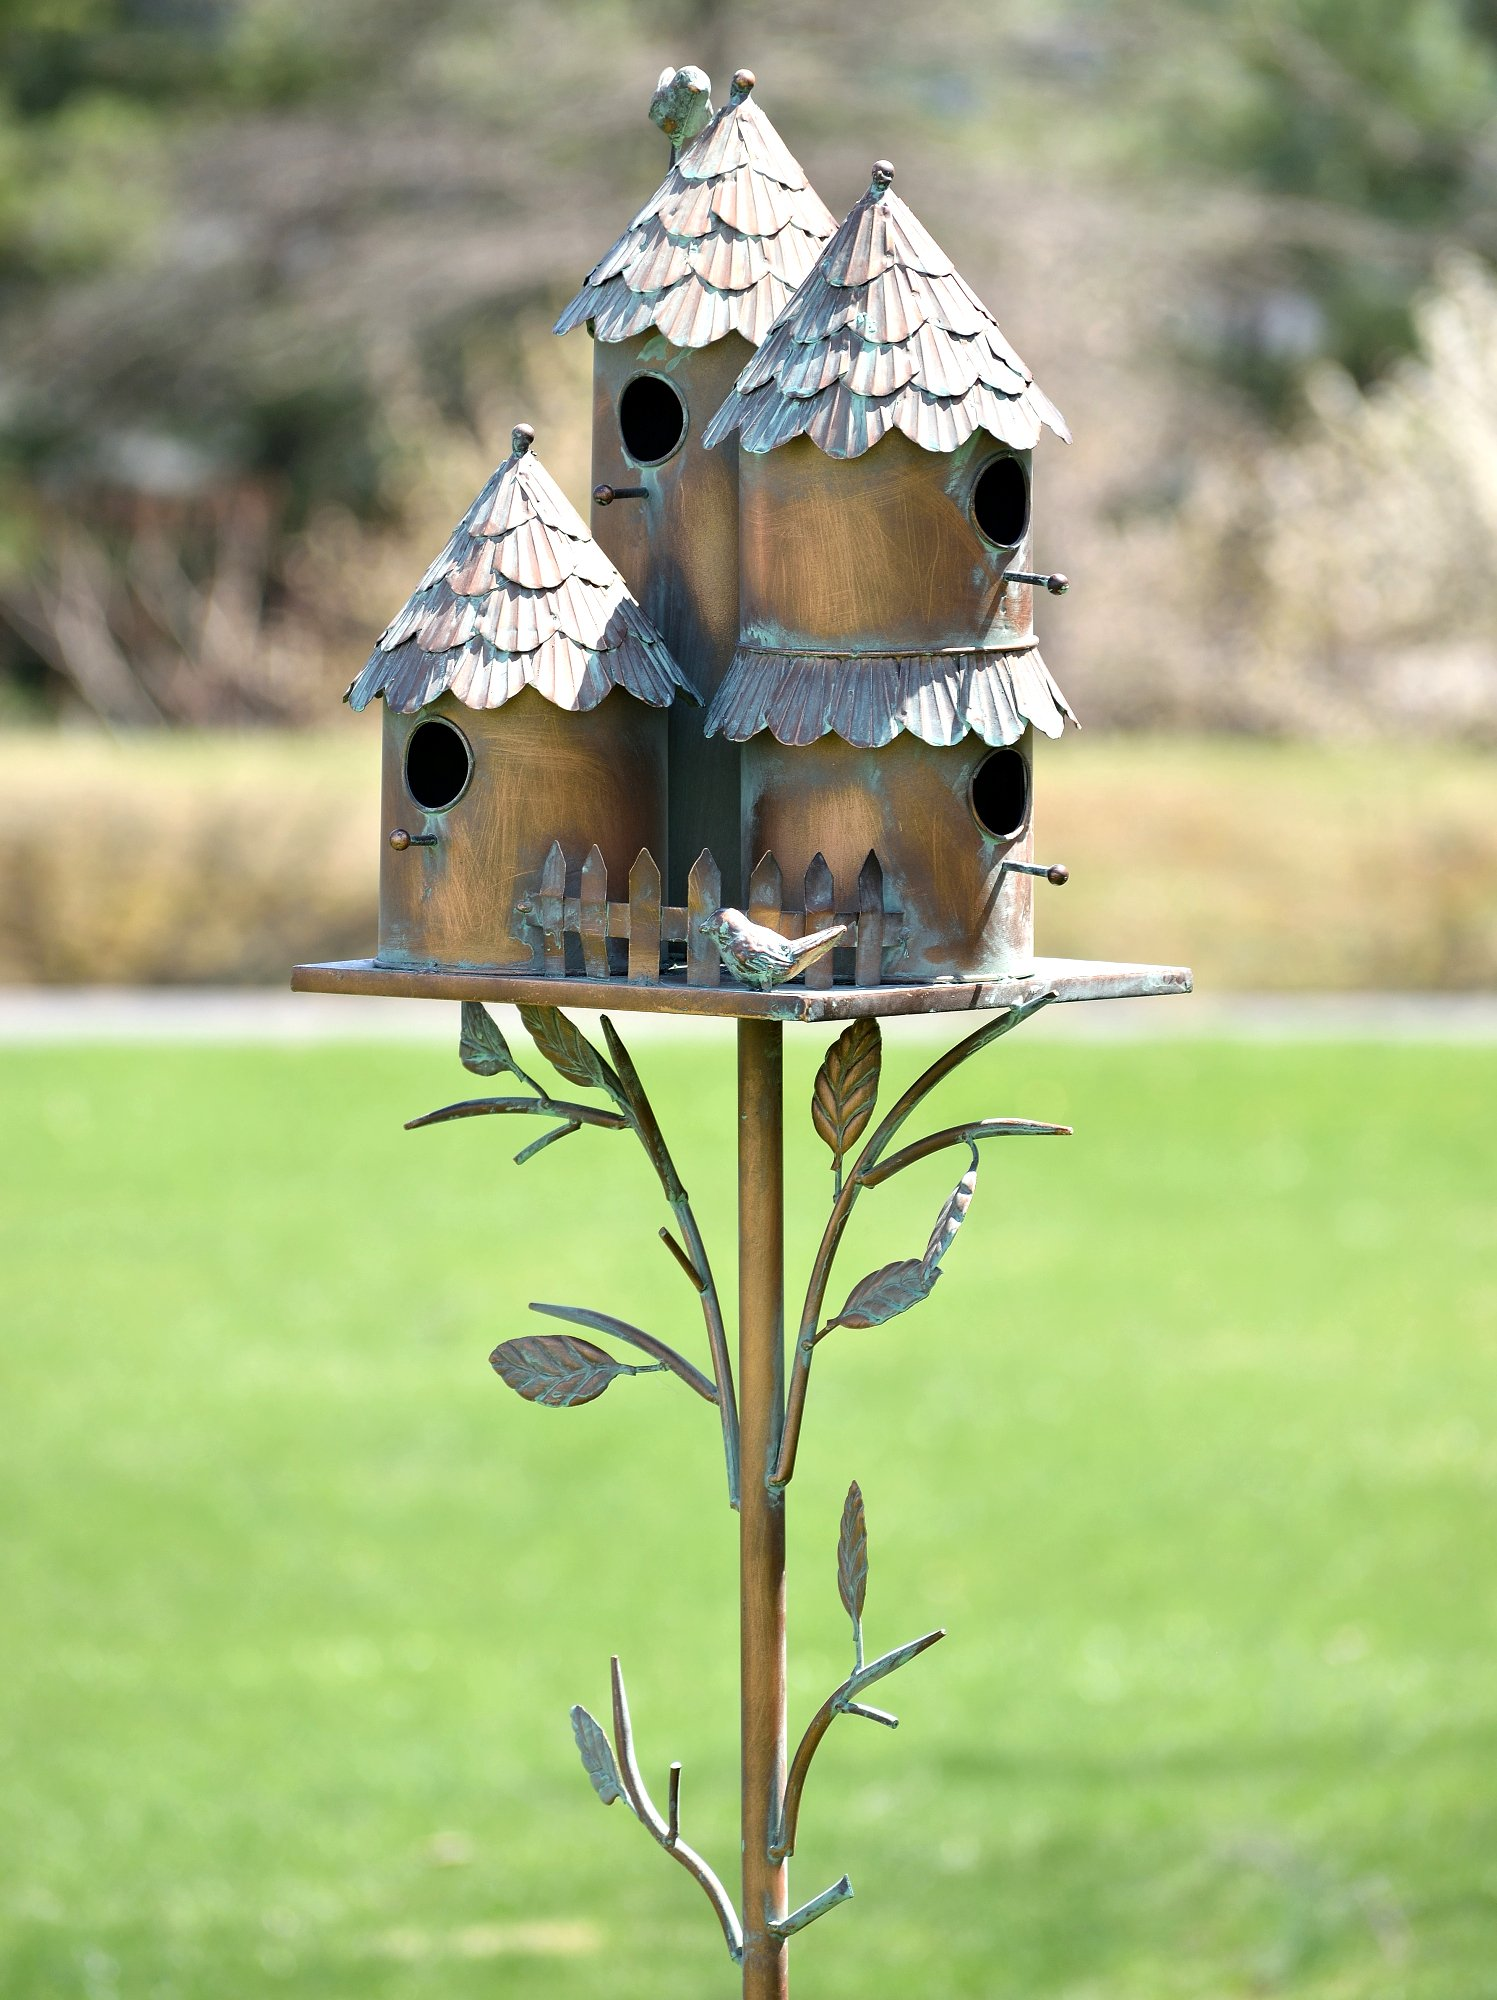 Zaer Ltd. Large Copper Colored Multi-Birdhouse Stakes, Room for 4 Bird Families in Each (Cylinders with Fence)